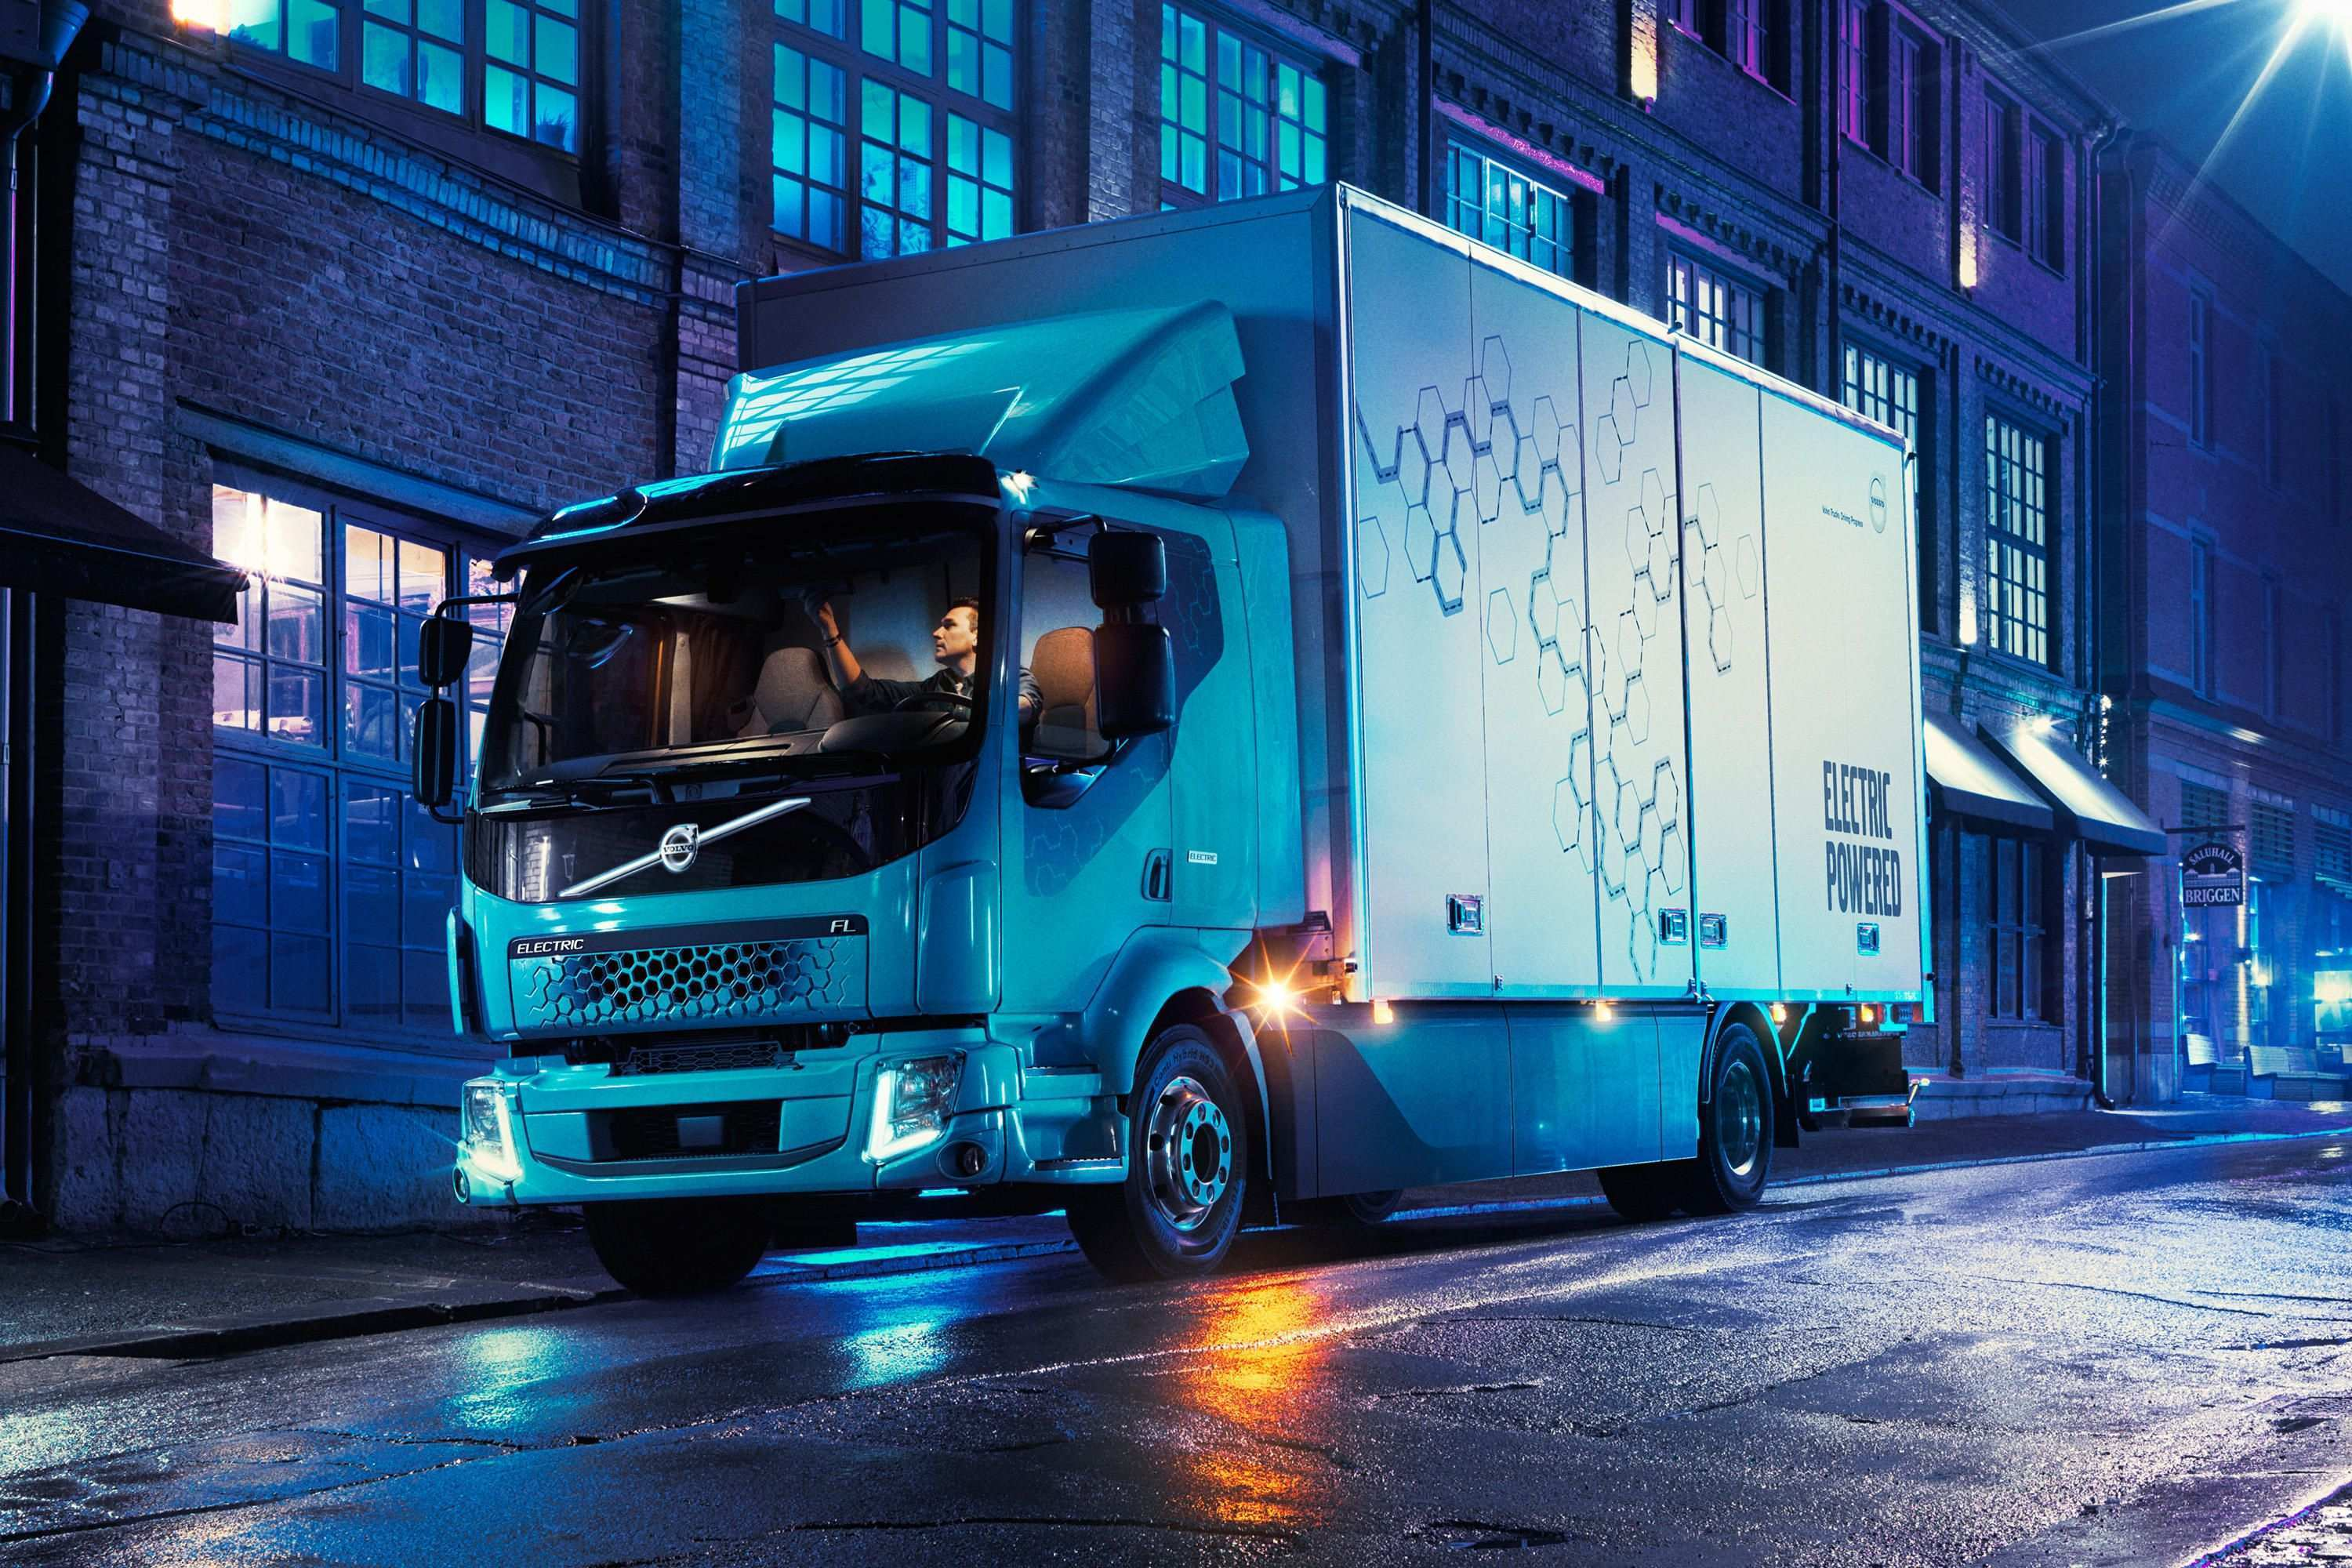 77 New Volvo Electric Truck 2019 Style for Volvo Electric Truck 2019